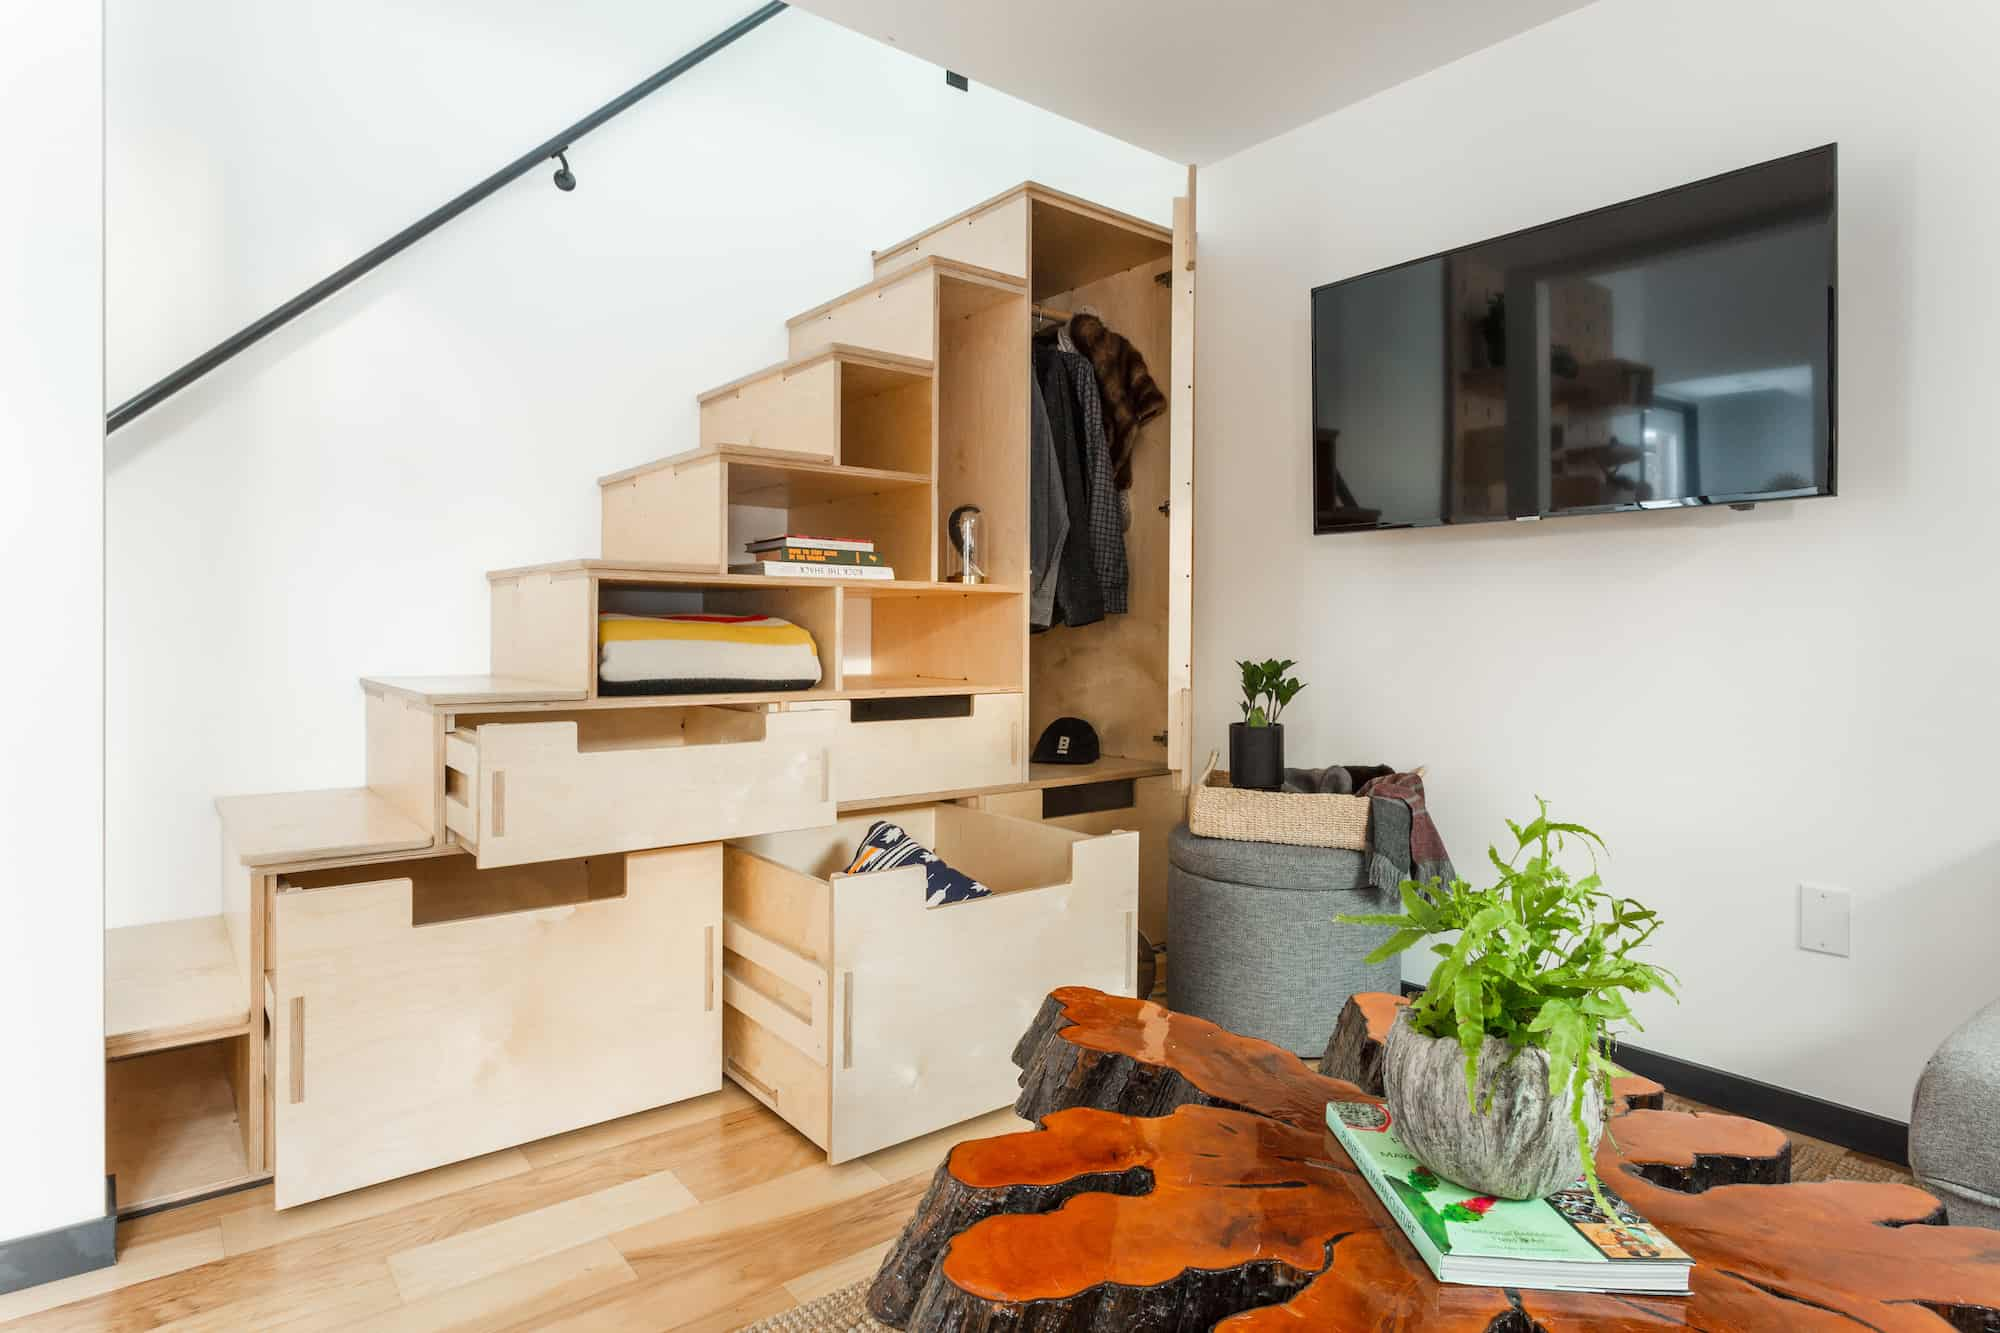 Prefab tiny home staircase storage by Hiatus Home